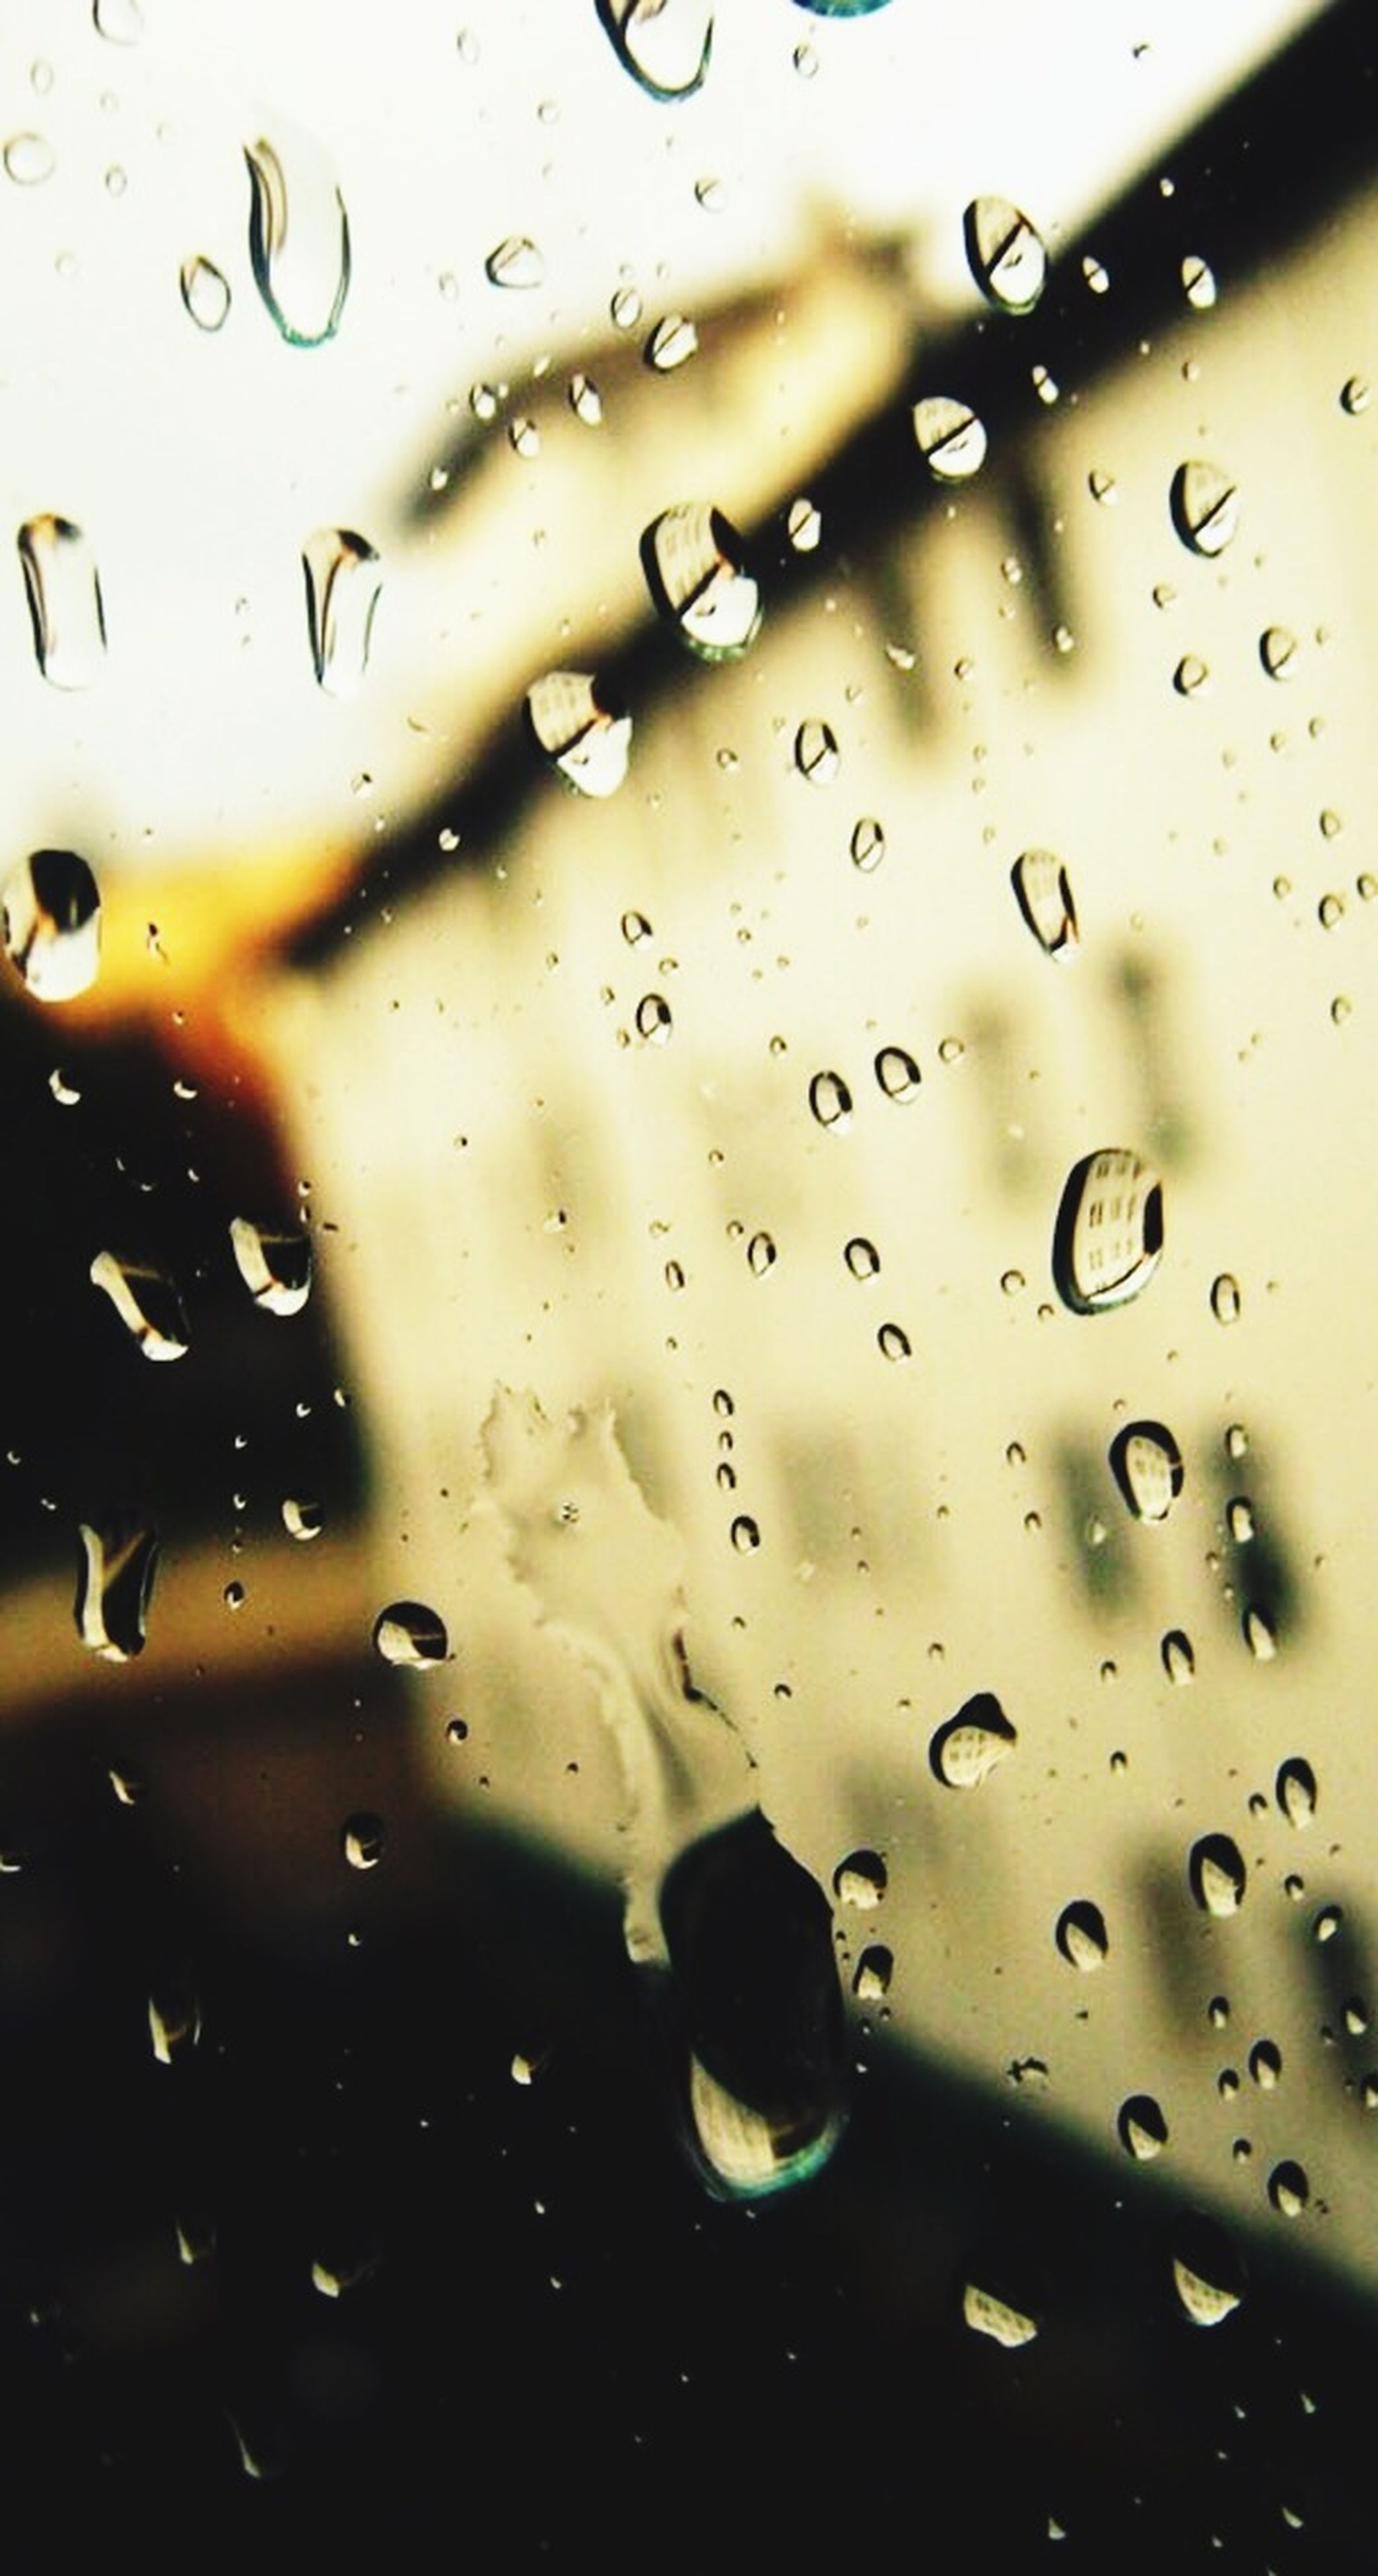 drop, wet, water, window, rain, indoors, transparent, raindrop, glass - material, backgrounds, full frame, close-up, glass, weather, season, droplet, focus on foreground, water drop, purity, monsoon